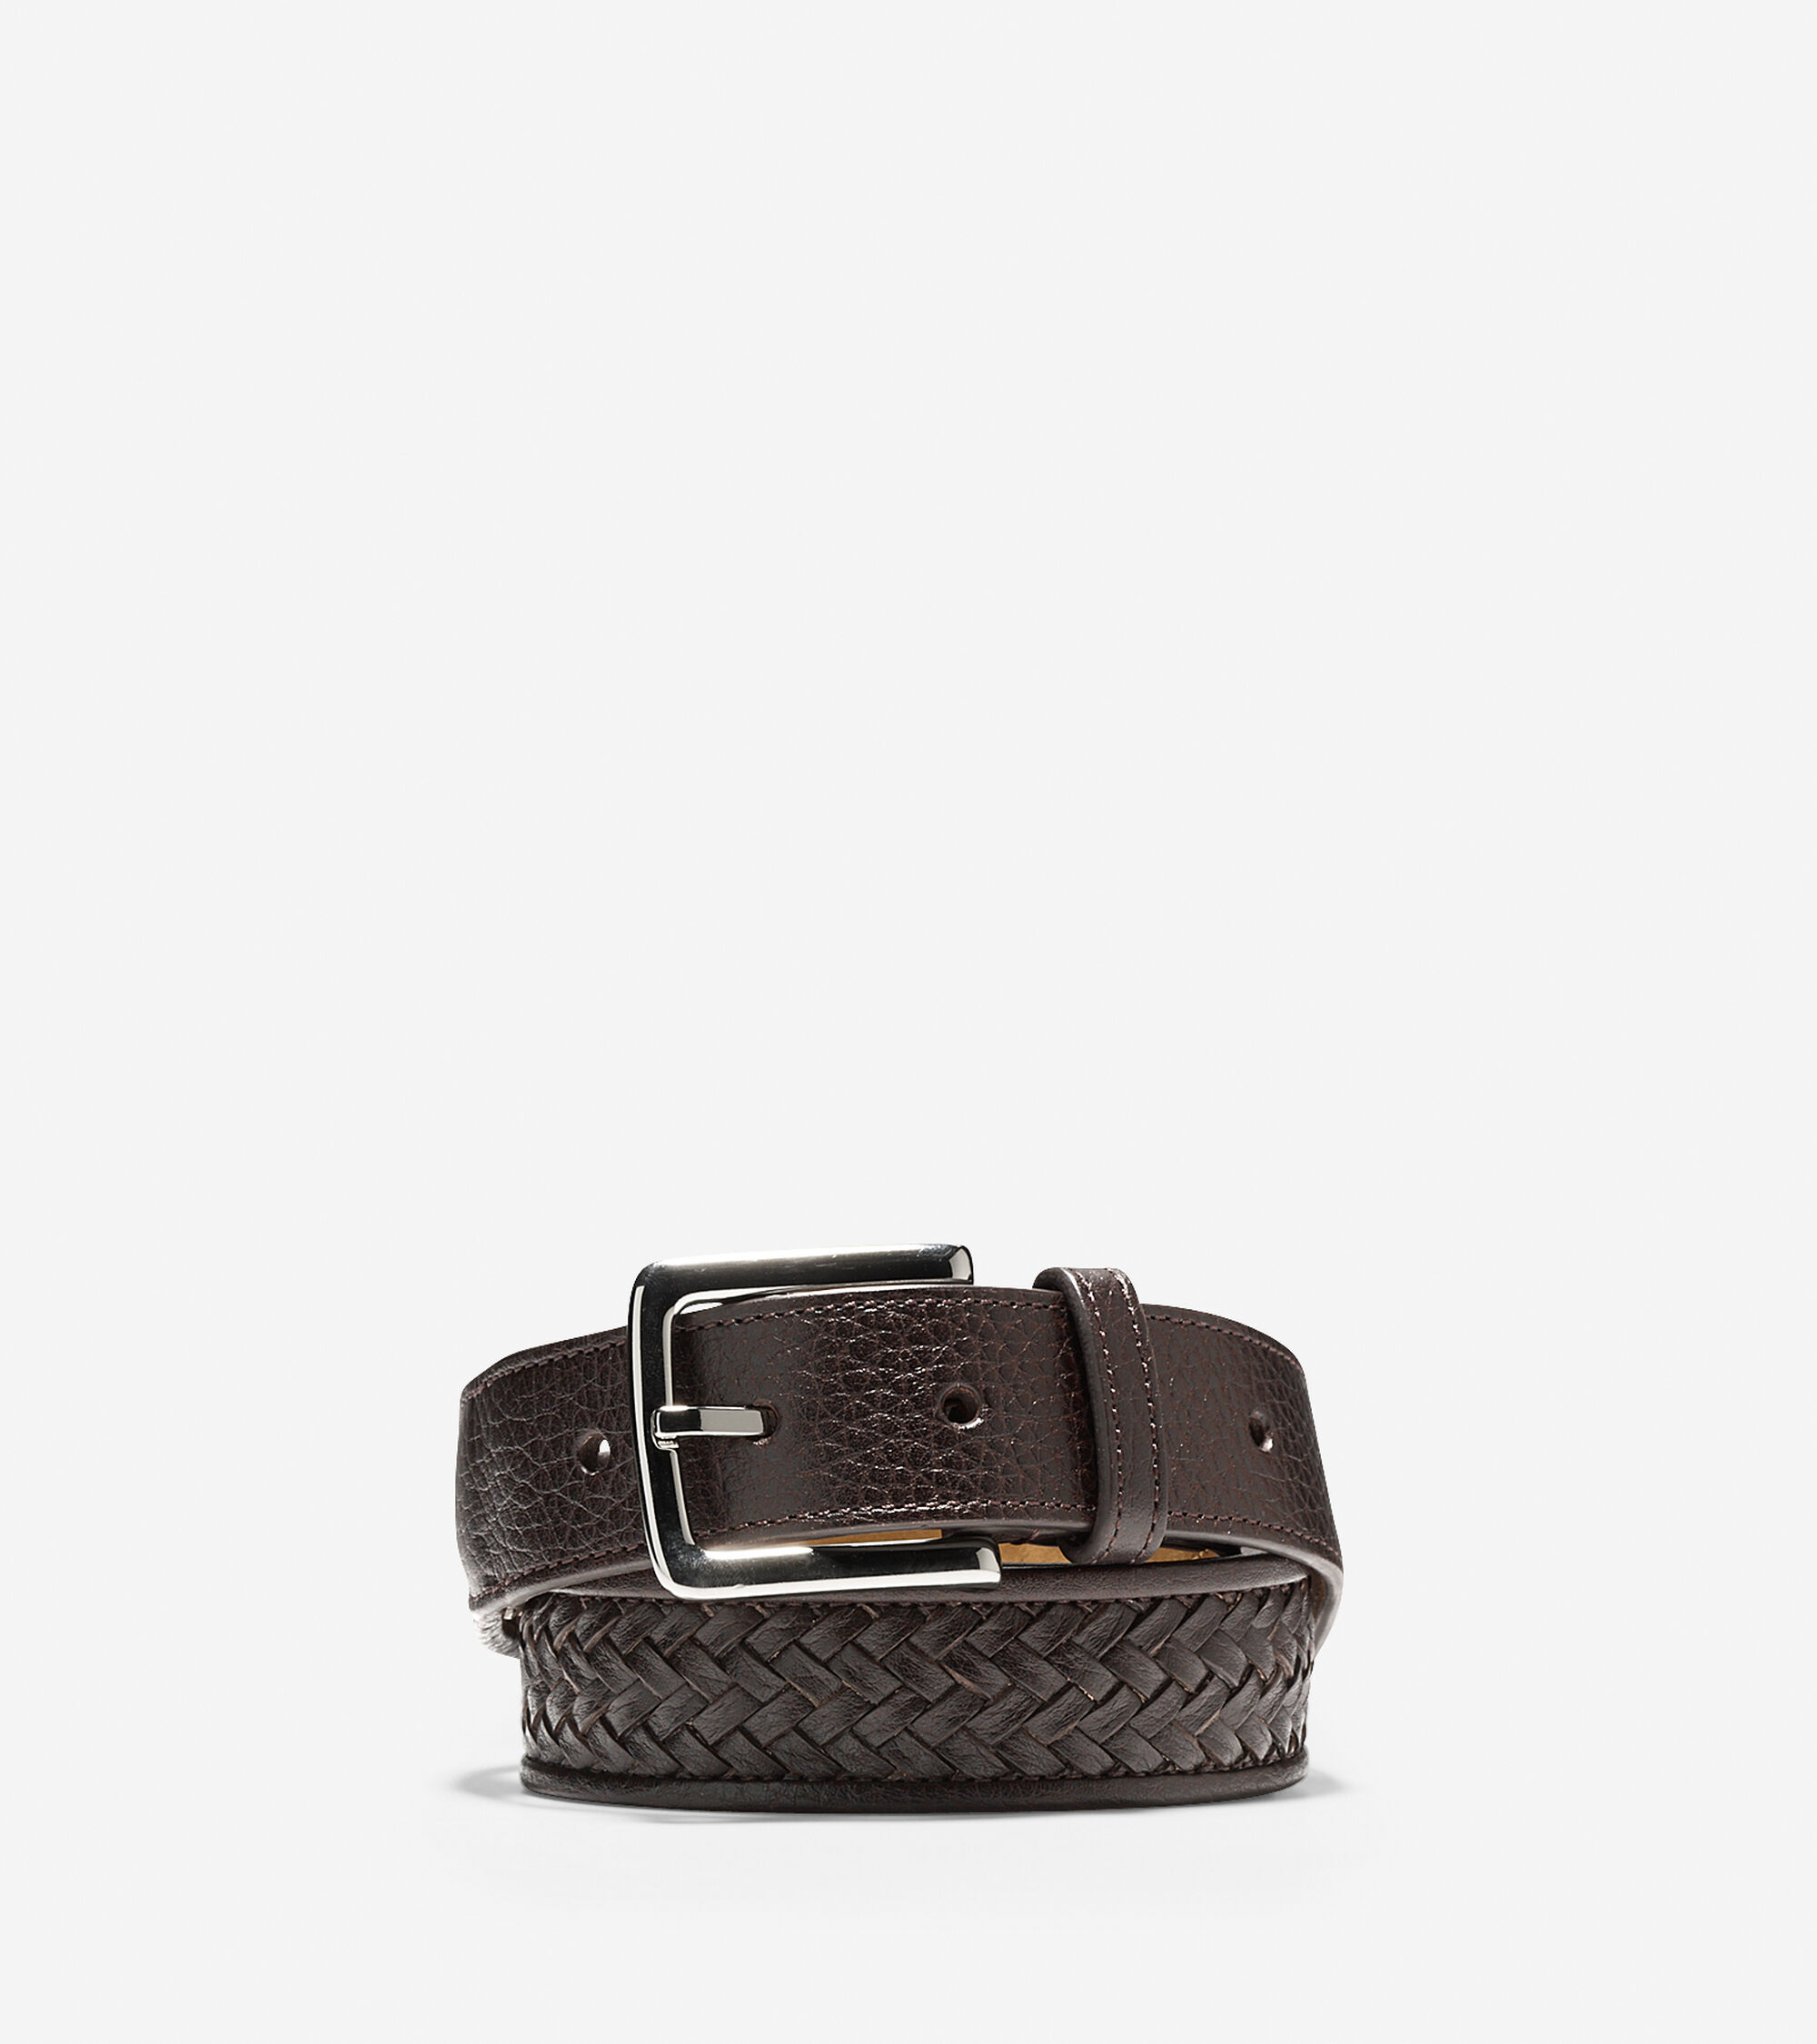 Accessories > 32mm Santa Croce Leather Belt